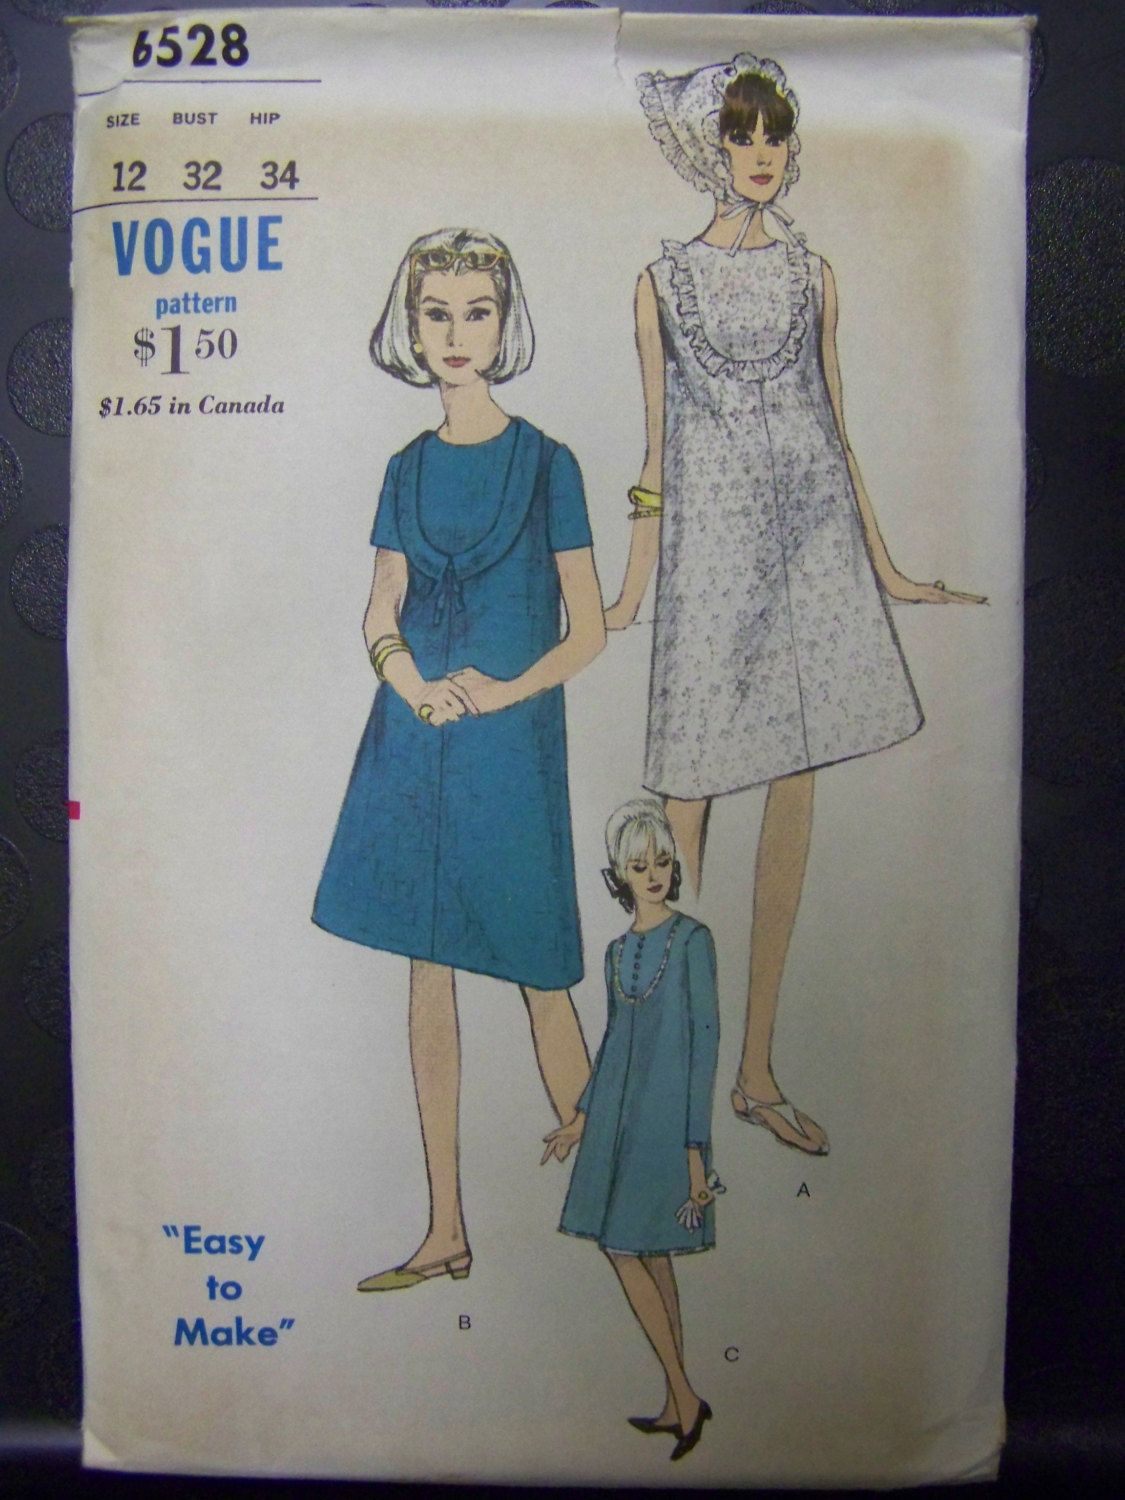 Vtg 1960s vogue 6528 sleeveless one piece maternity dress scarf vtg 1960s vogue 6528 sleeveless one piece maternity dress scarf pattern sz 12 complete ombrellifo Images